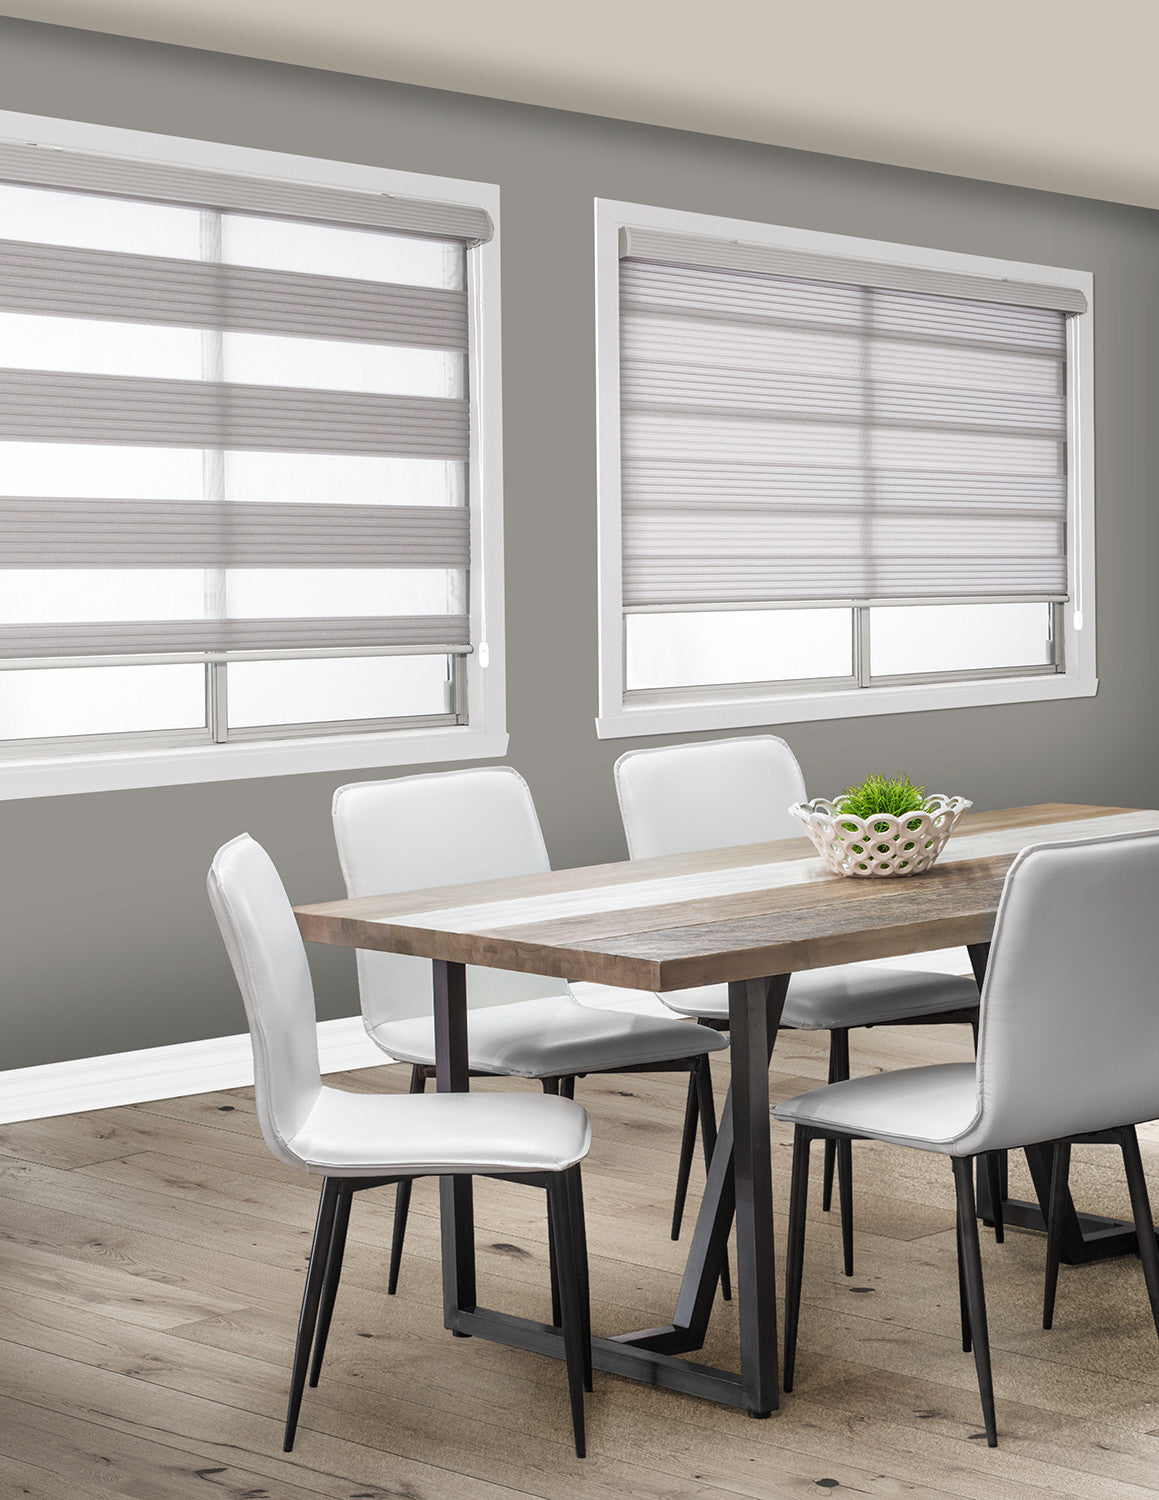 LITEOUT - CUSTOM MADE SHADES - Series 6000 MAGIC LITE BLACKOUT AND PLEATED